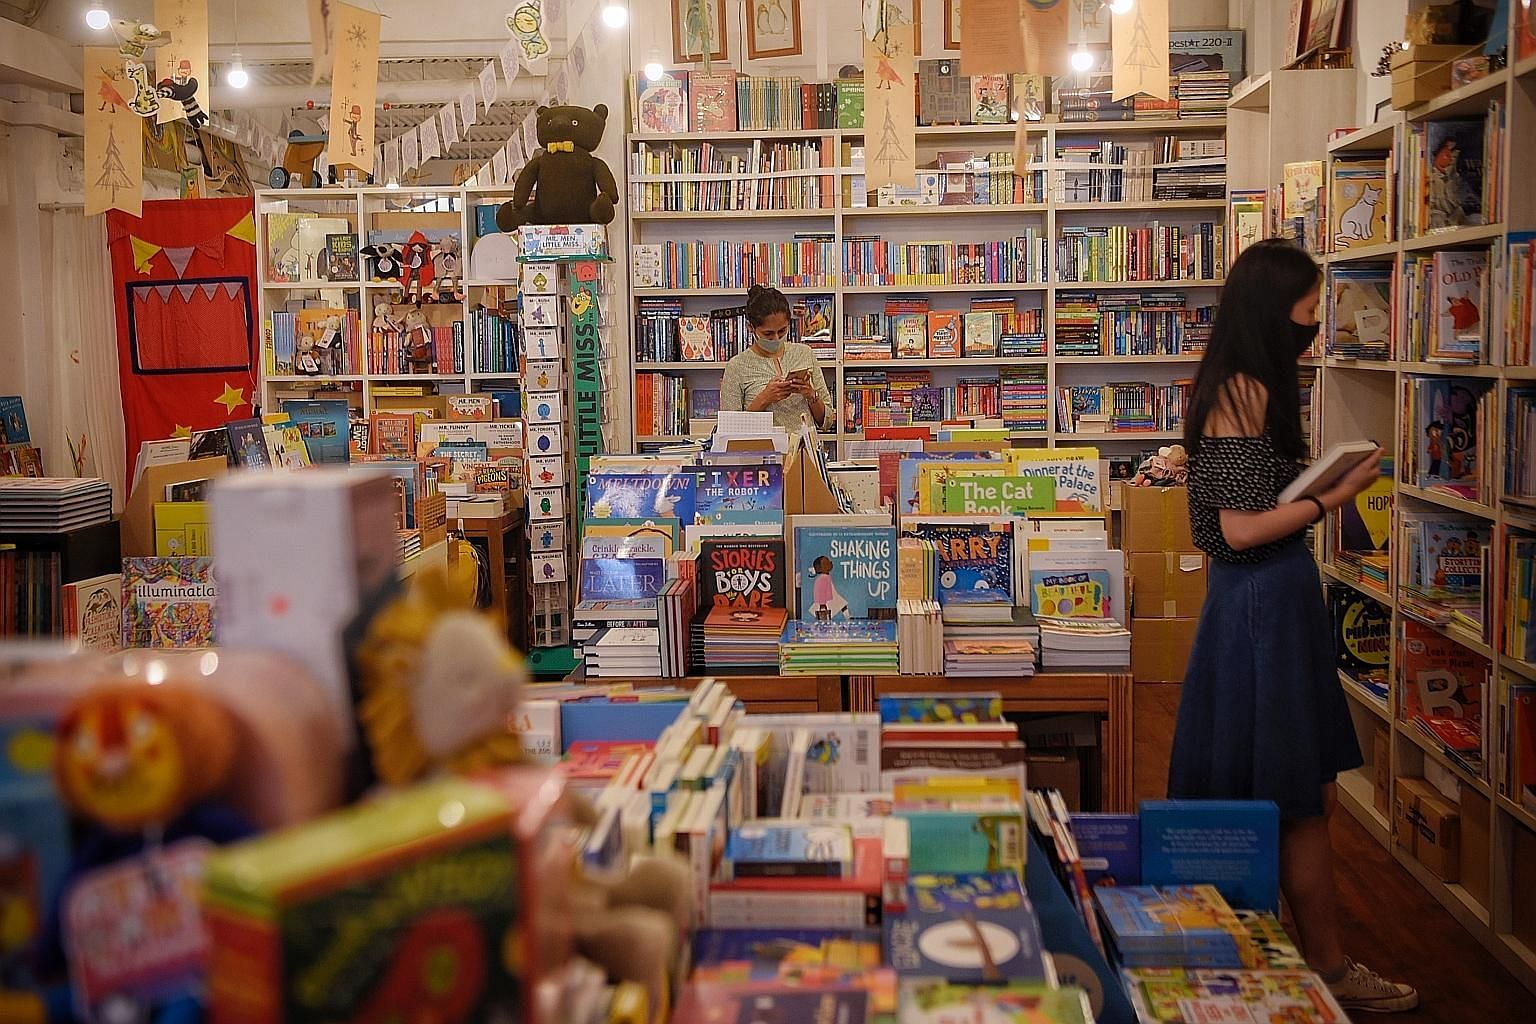 Children's bookstore Woods In The Books (left) in Tiong Bahru was one of the bookstores caught off guard by the circuit breaker. As it had no webstore then, it decided to curate care packs of books and toys to send to customers.